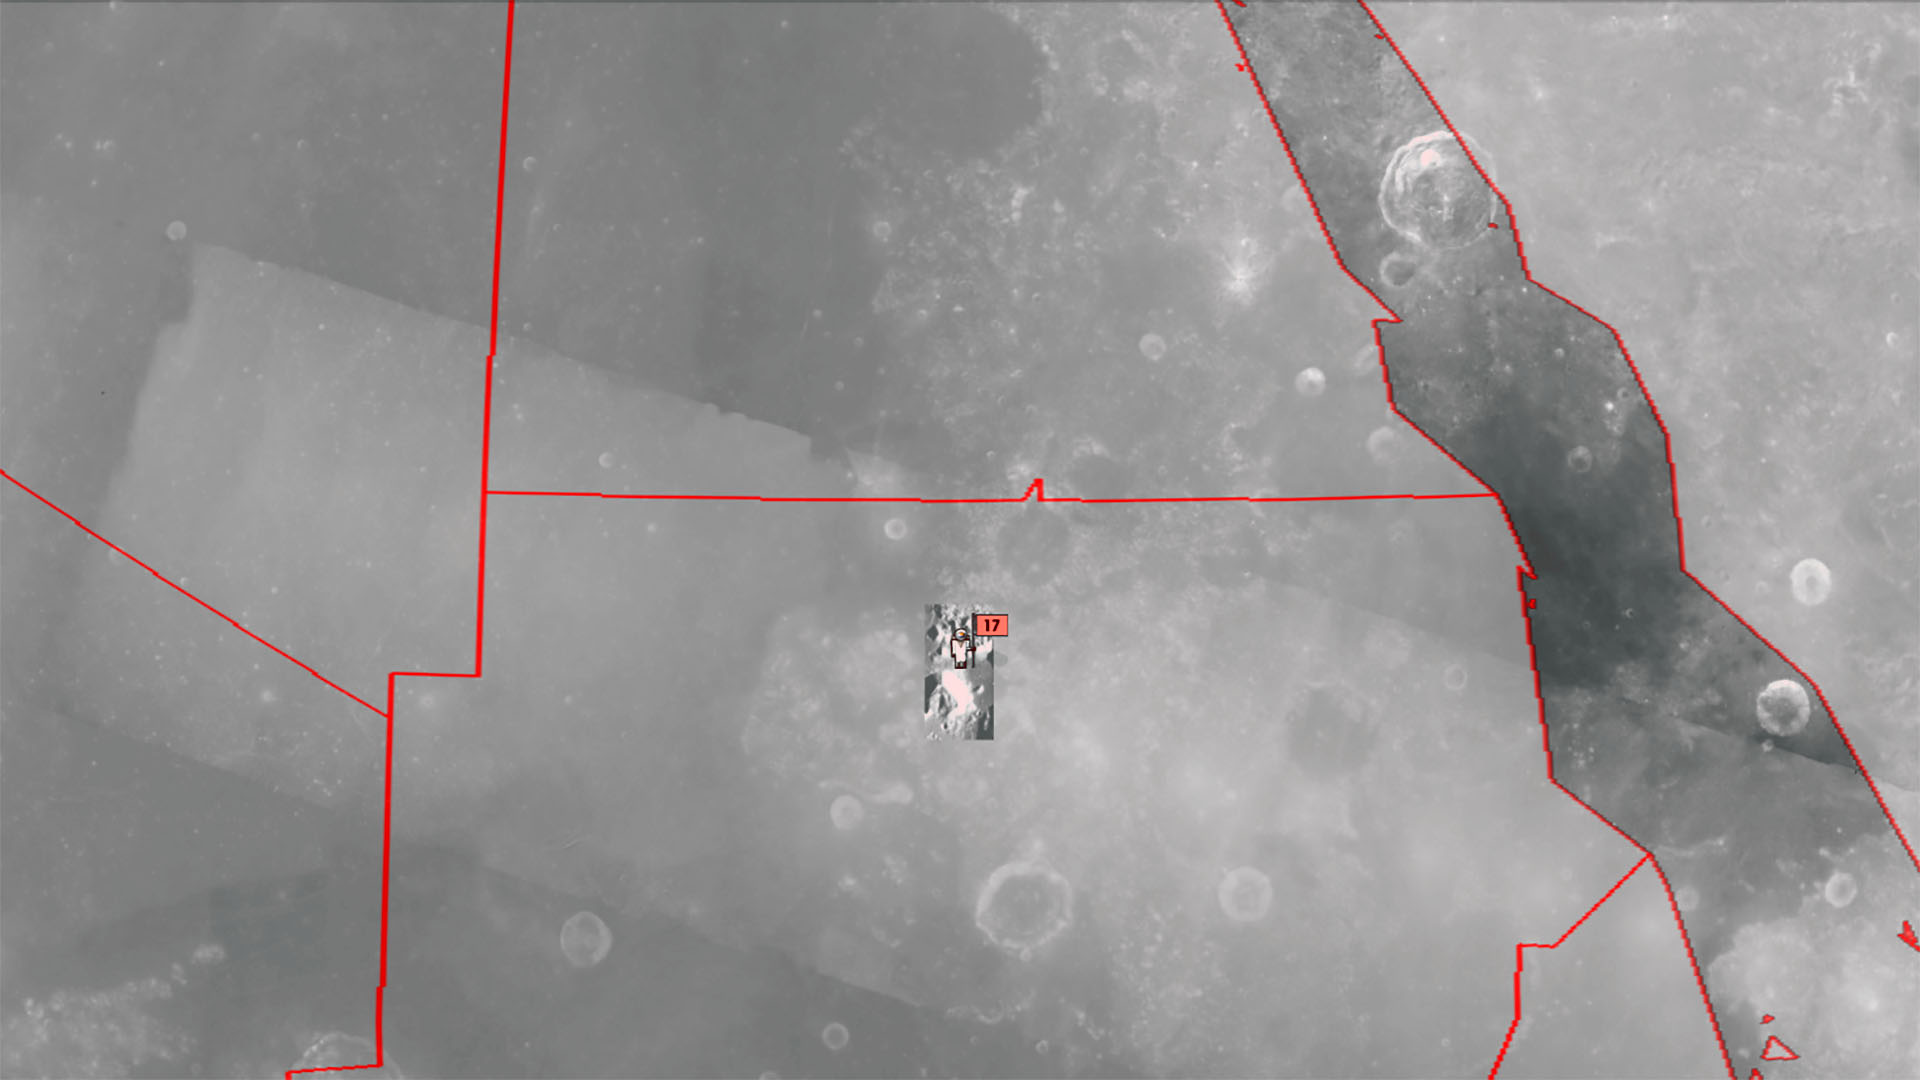 A depiction of an Apollo 17 astronaut, presumably Commander Eugene Cernan, posing with a flag in North Sudan on the Moon in Google Earth 7.1.2.2041.